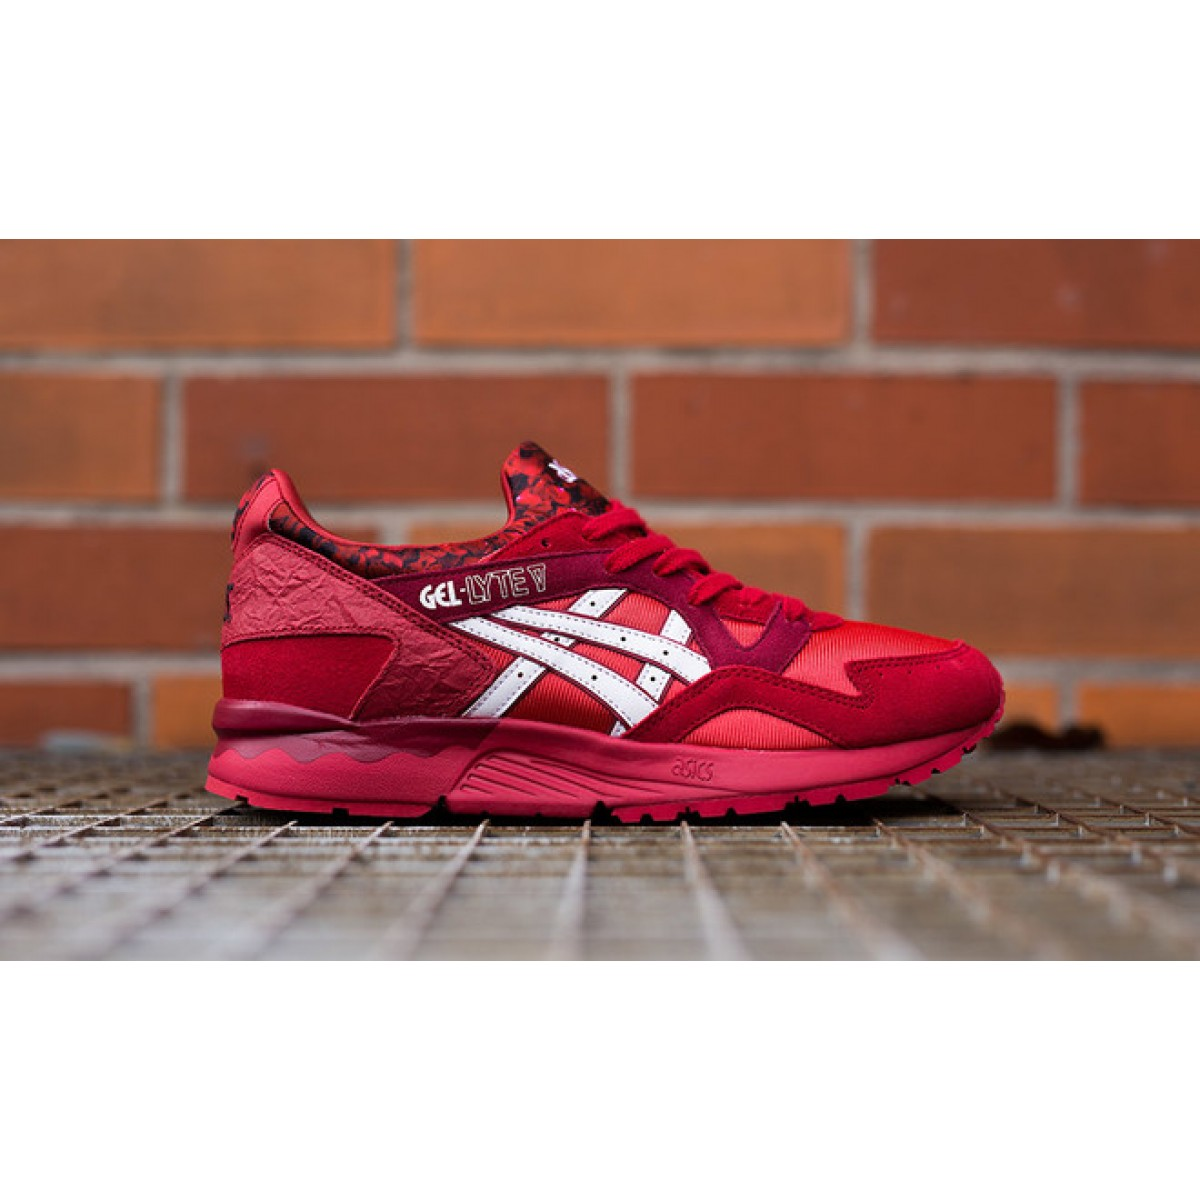 asics 2017 homme rouge